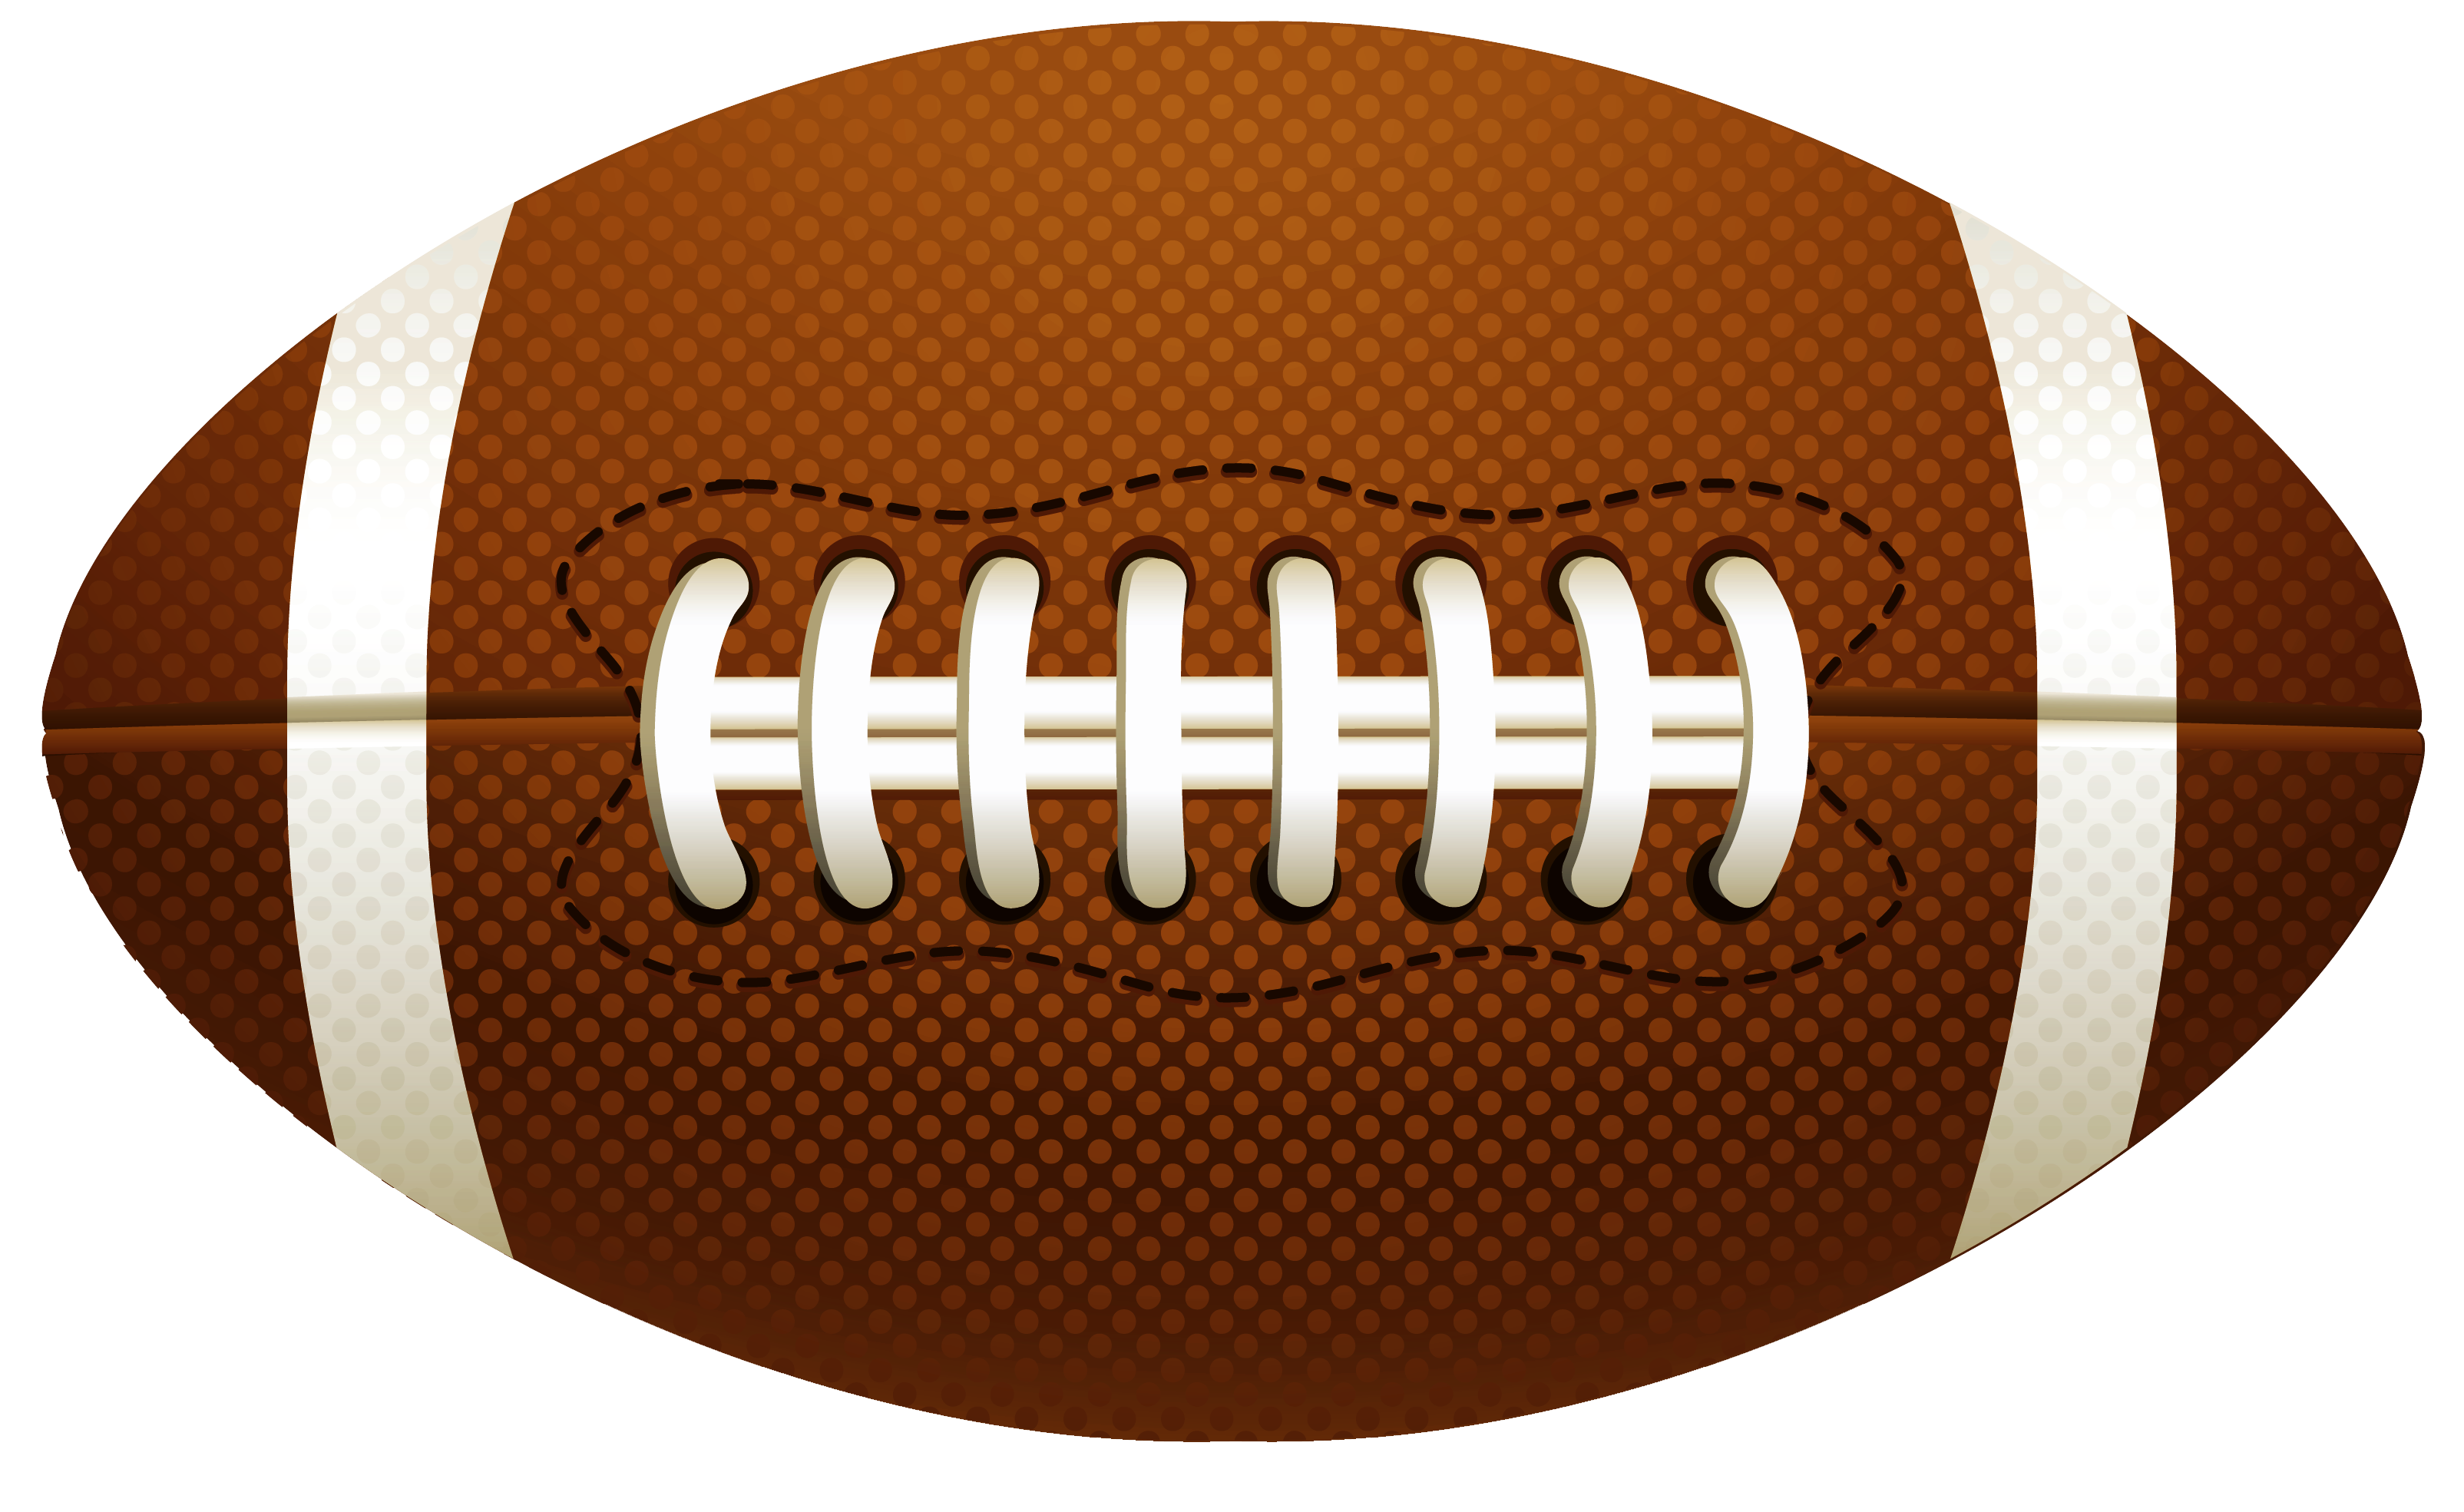 Super basketball clipart royalty free download American Football Ball PNG Vector Clipart | Interests | Pinterest ... royalty free download